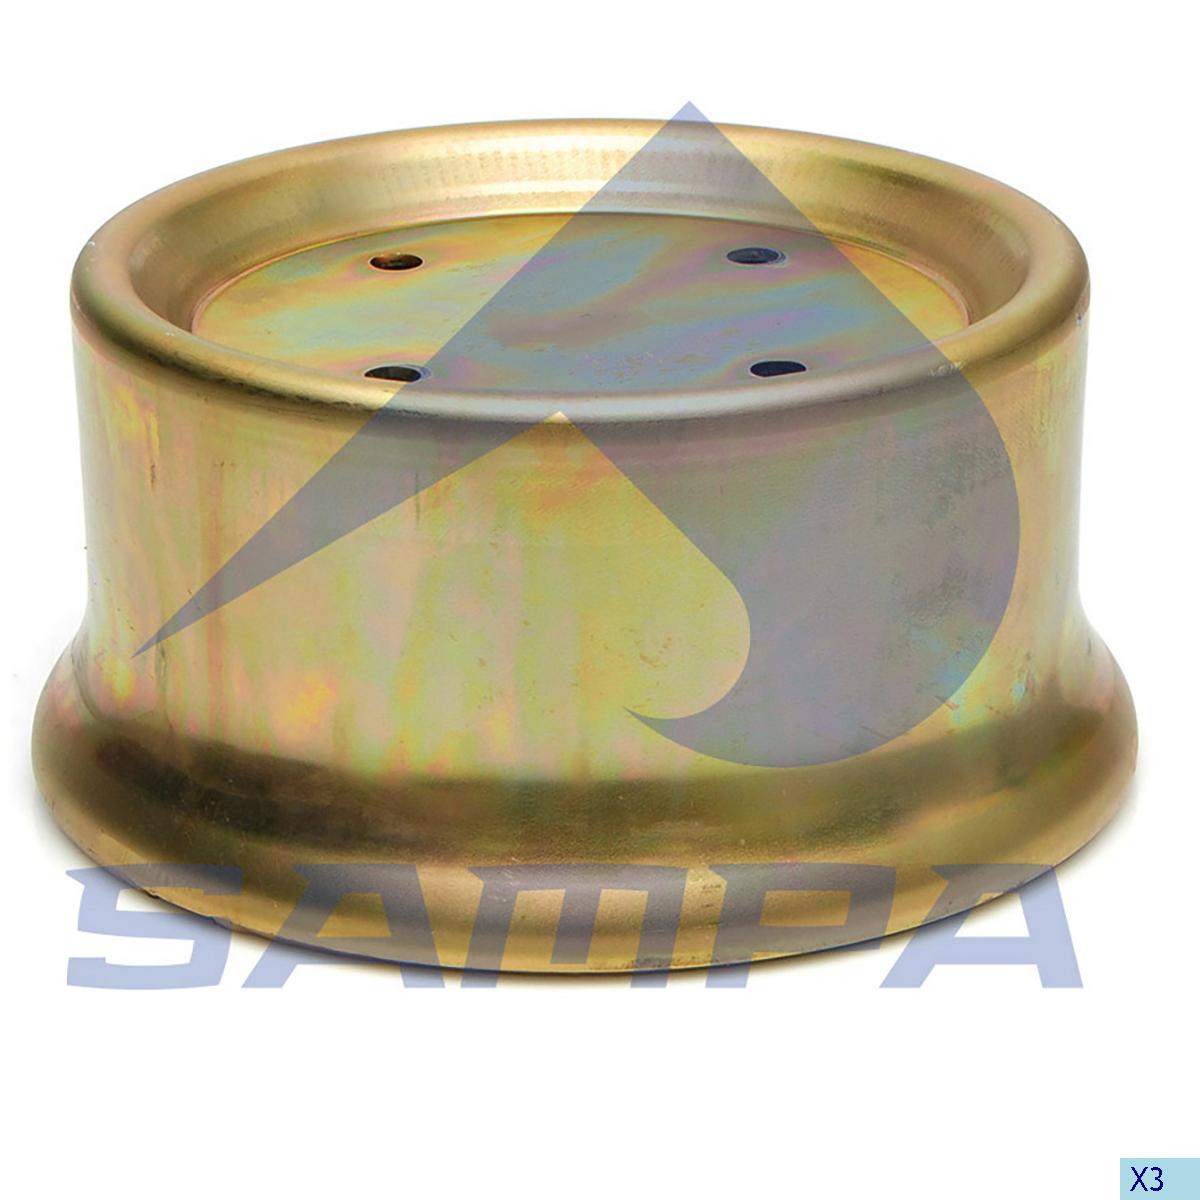 Piston, Air Spring, Ror-Meritor, Suspension